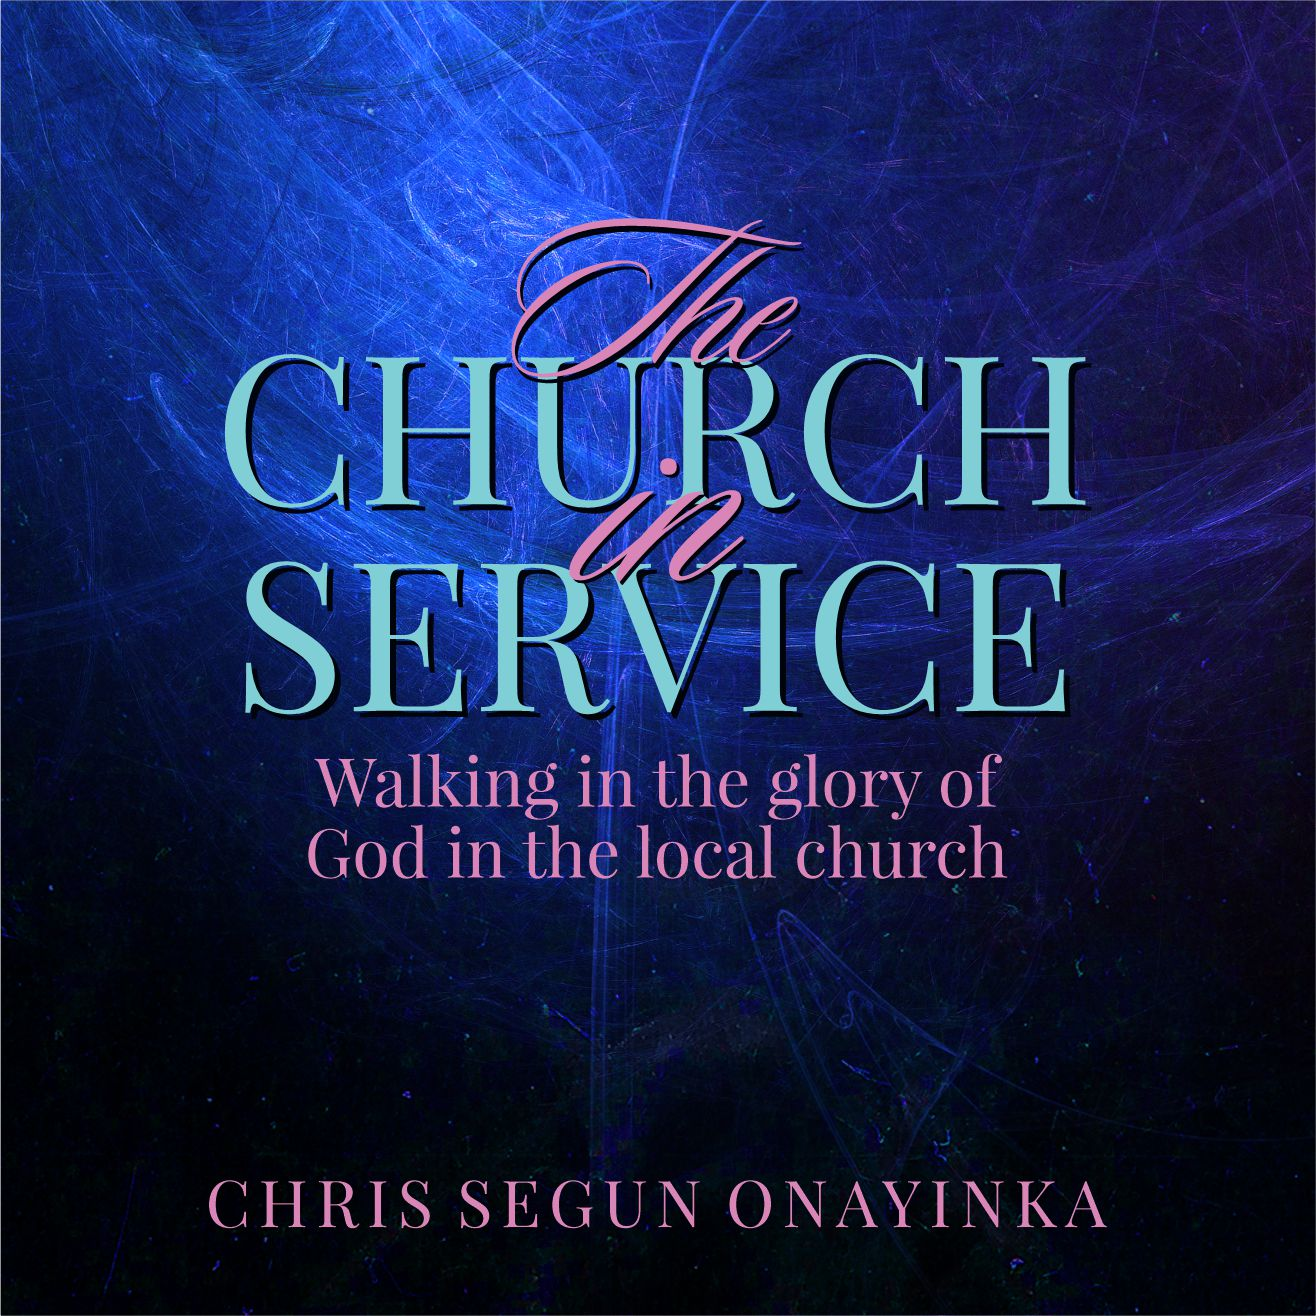 The Church in Service – Walking in the glory of God in the Local church